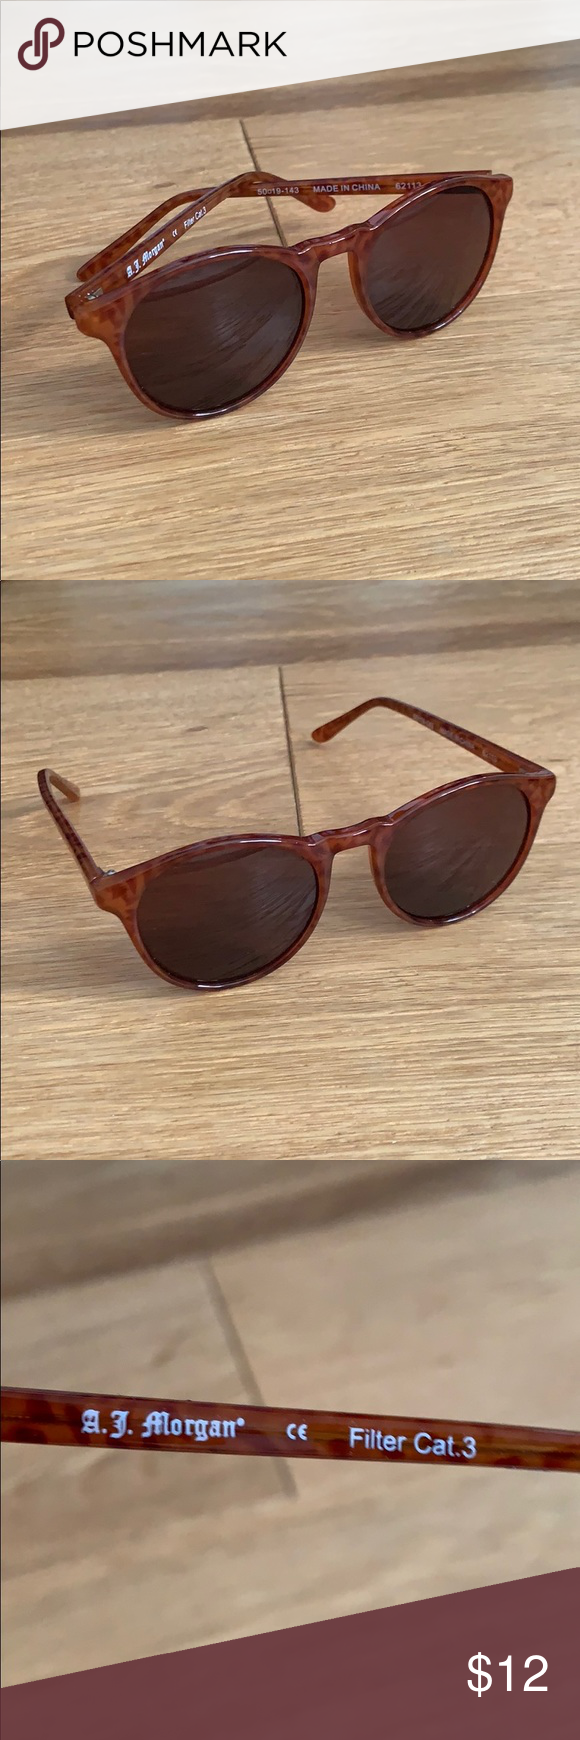 8a2de1012 Anthropologie A.J. Morgan sunglasses NEW Never worn! Super cute ...